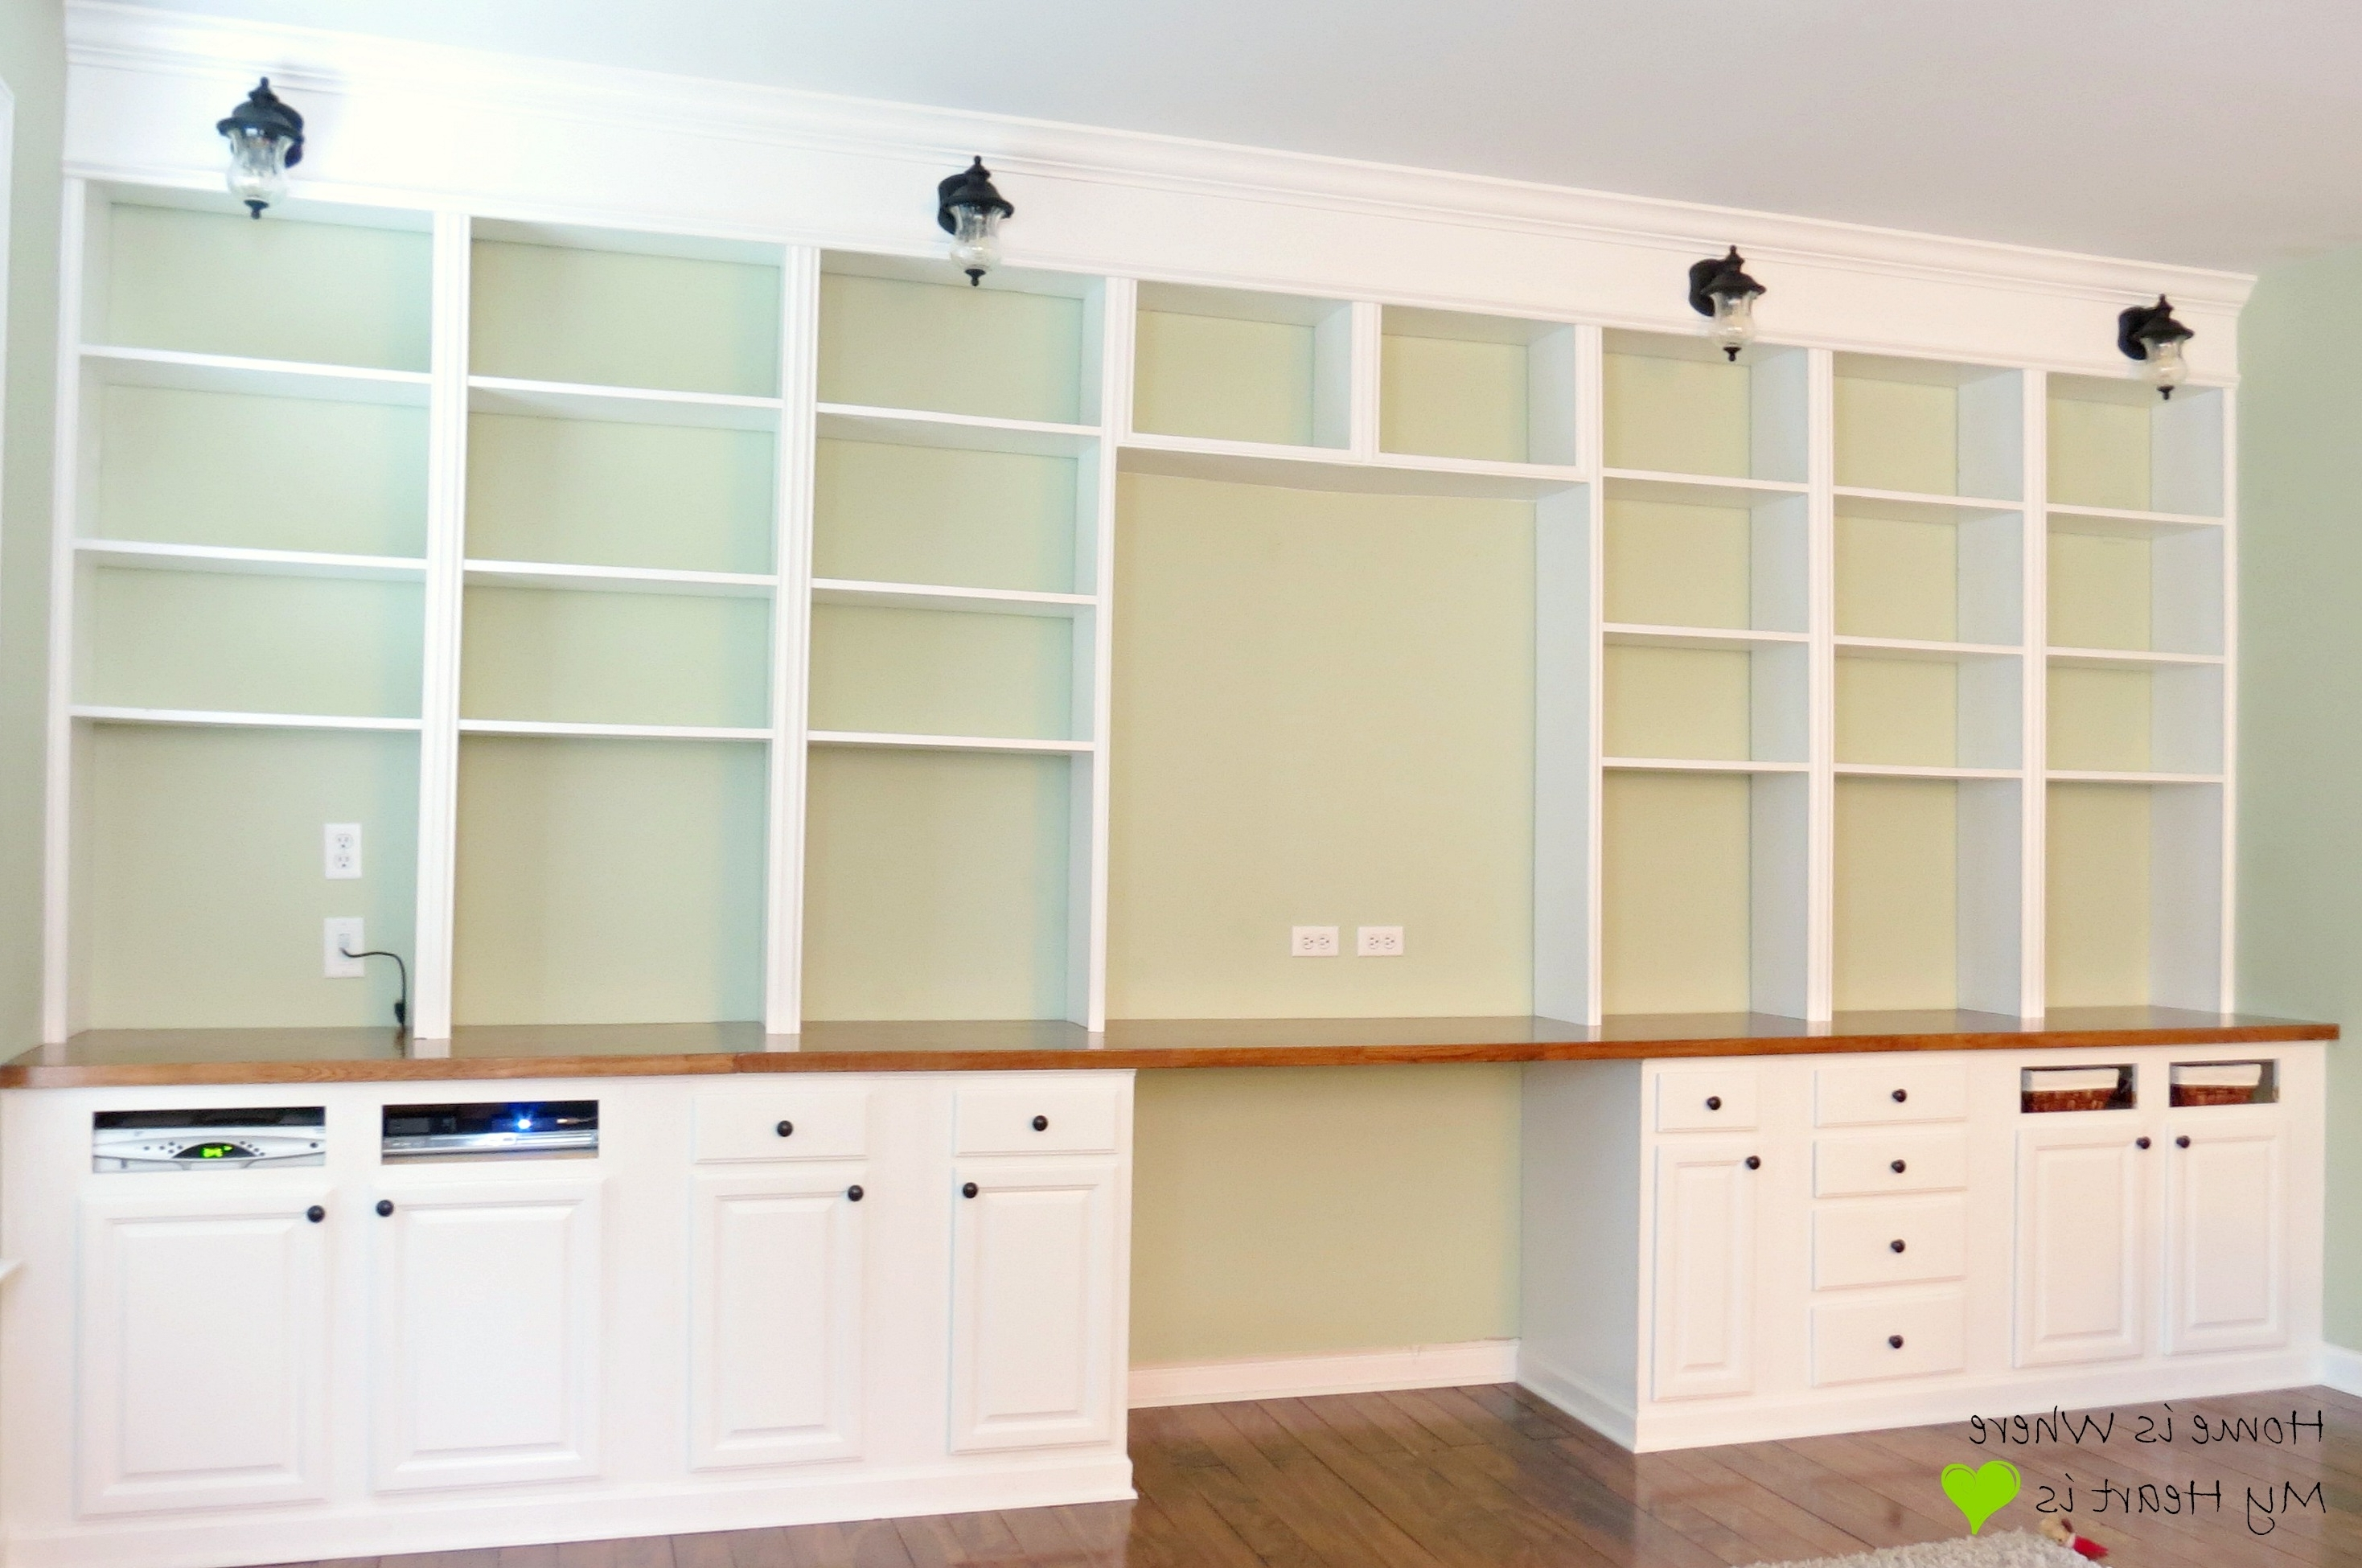 Full Wall Bookcases Within Latest Modern Wall Bookshelves With Intricate And Unexpected Design (View 11 of 15)